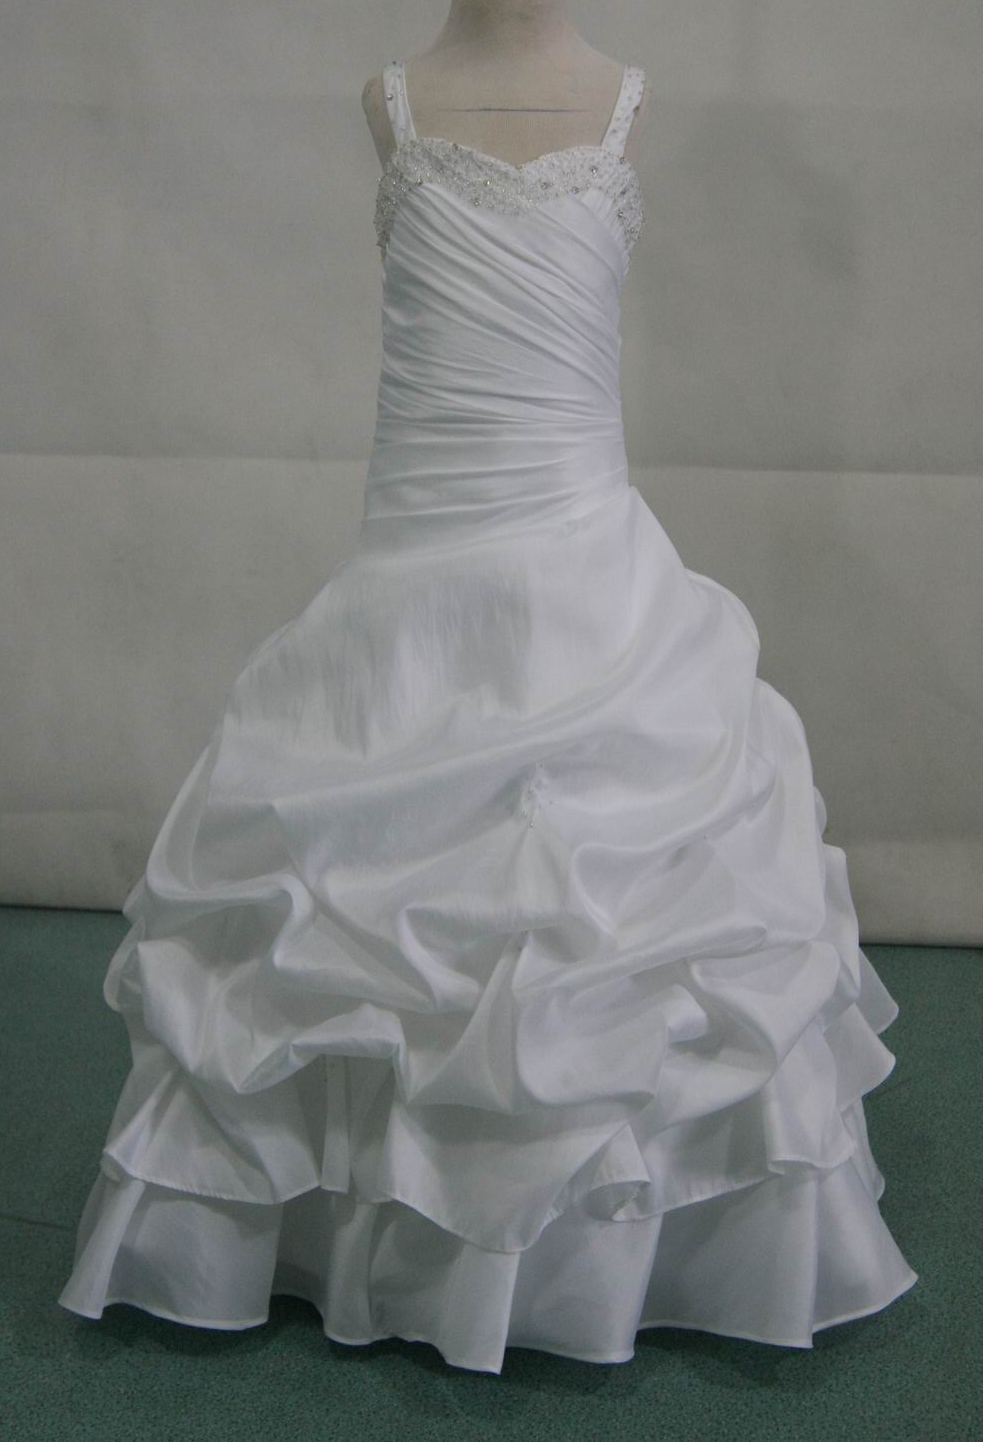 white gown with silver beading